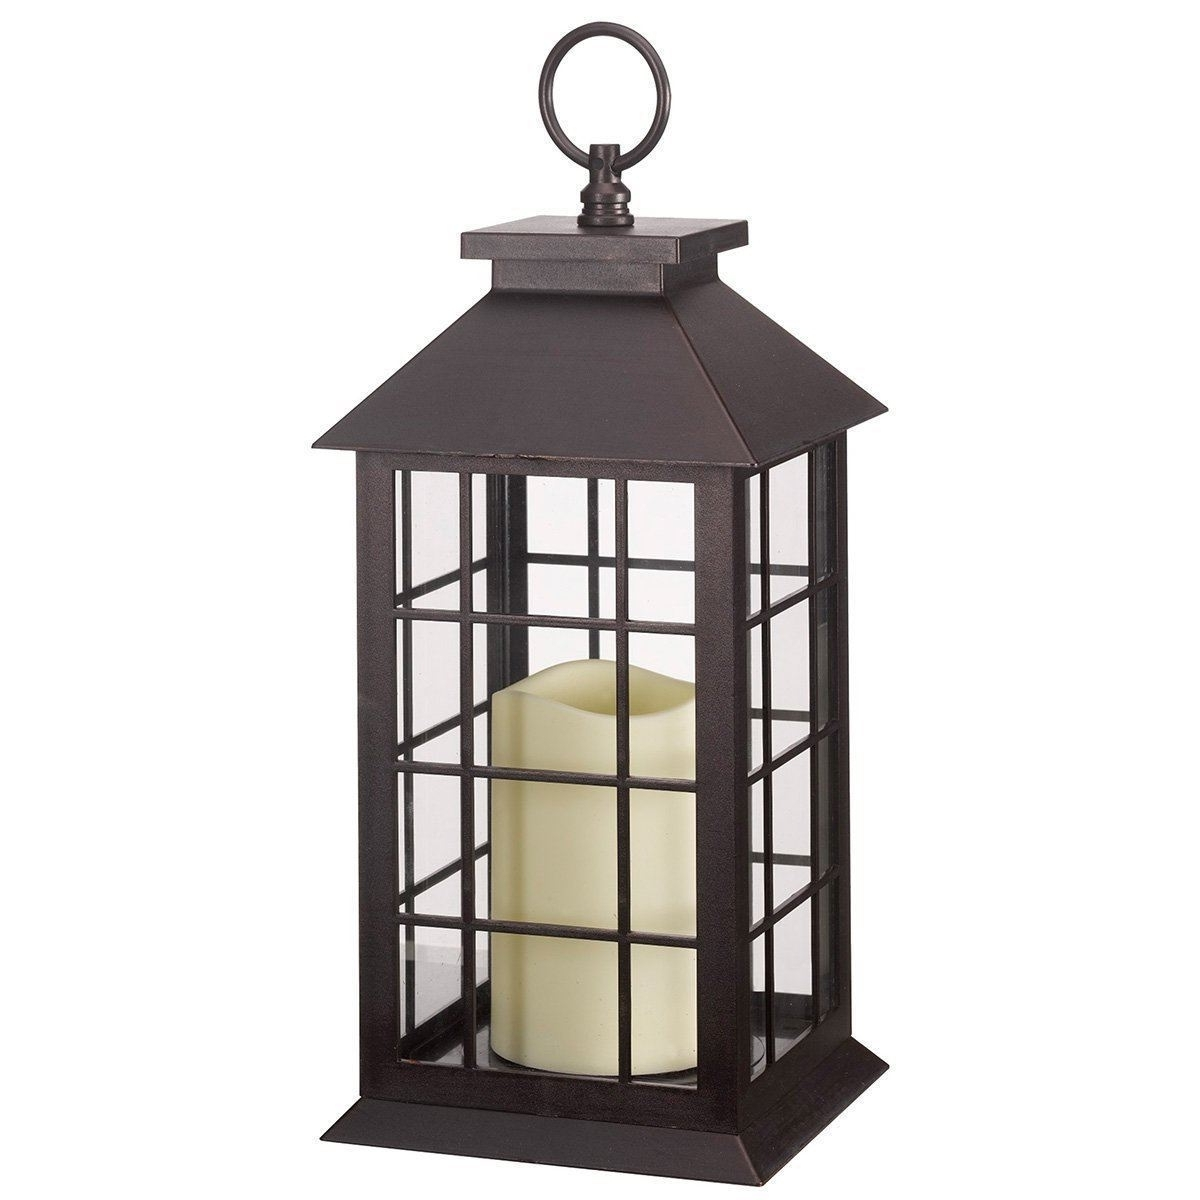 Battery Operated Window Lantern With Timer Led Candle Indoor Outdoor With Regard To 2018 Outdoor Timer Lanterns (View 17 of 20)